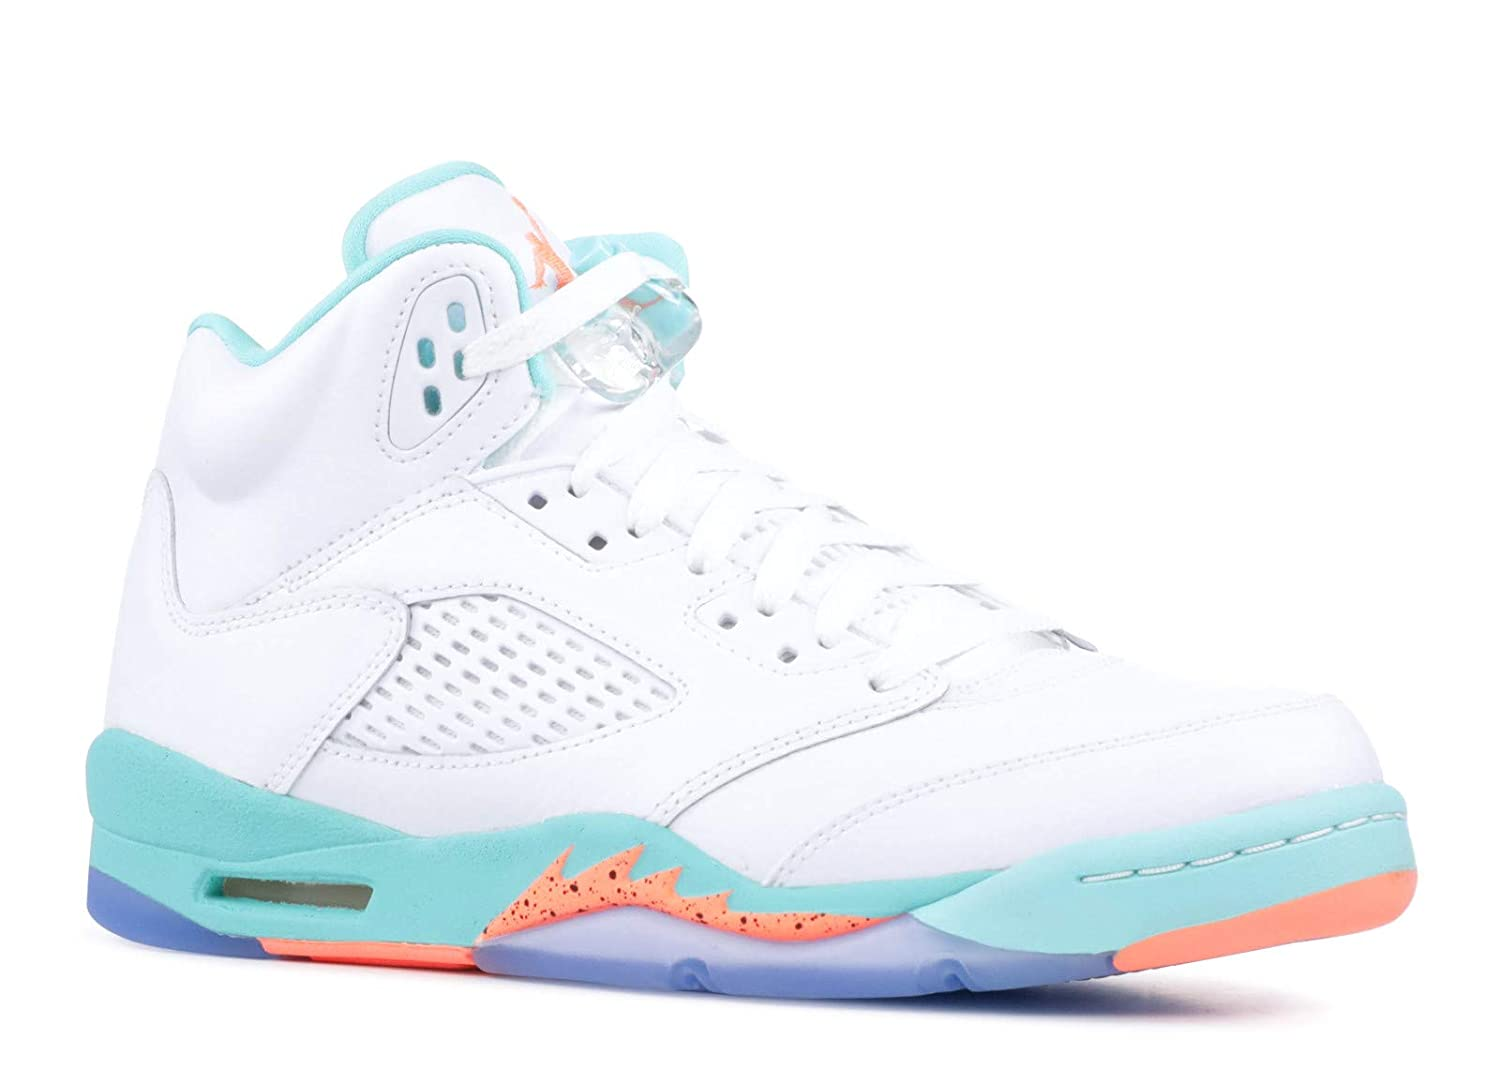 huge discount 180f1 fff8f Amazon.com   Nike Air Jordan 5 Retro Kids GS White Crimson Pulse-Light Aqua  440892-100   Basketball